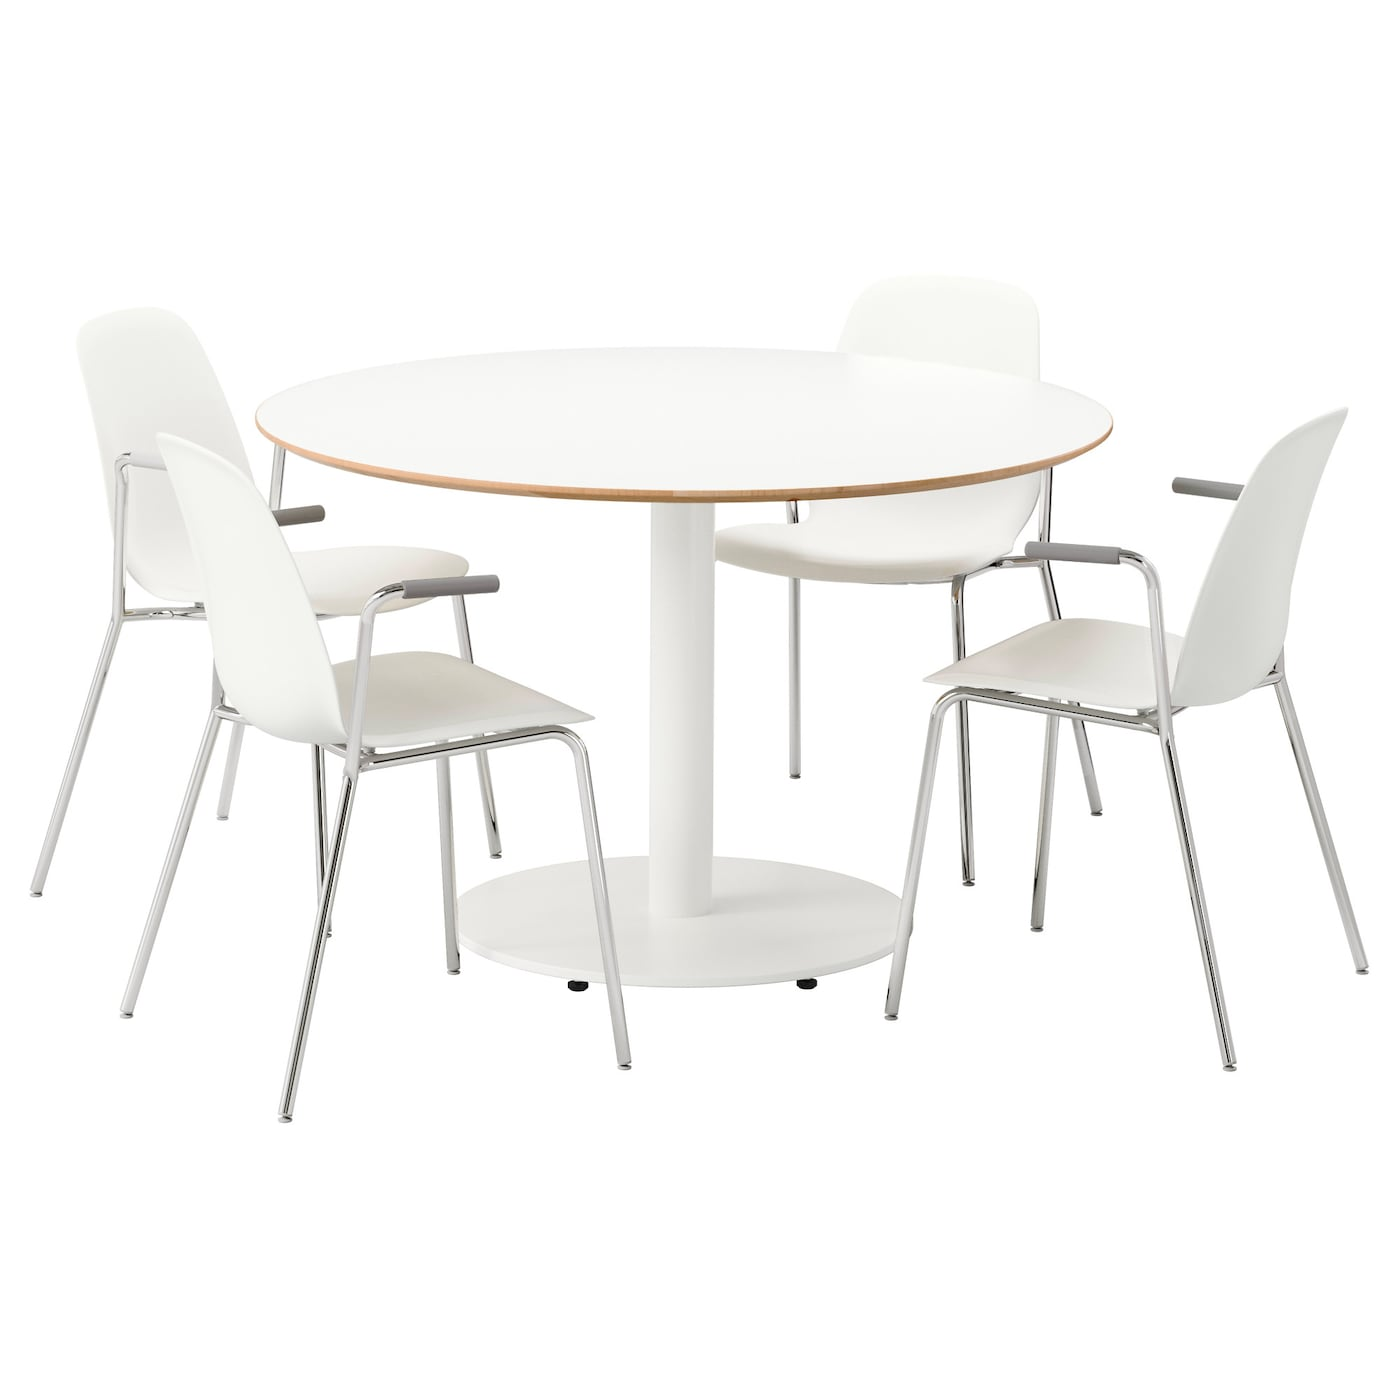 Billsta leifarne table and 4 chairs white white 118 cm ikea for Set de table ikea